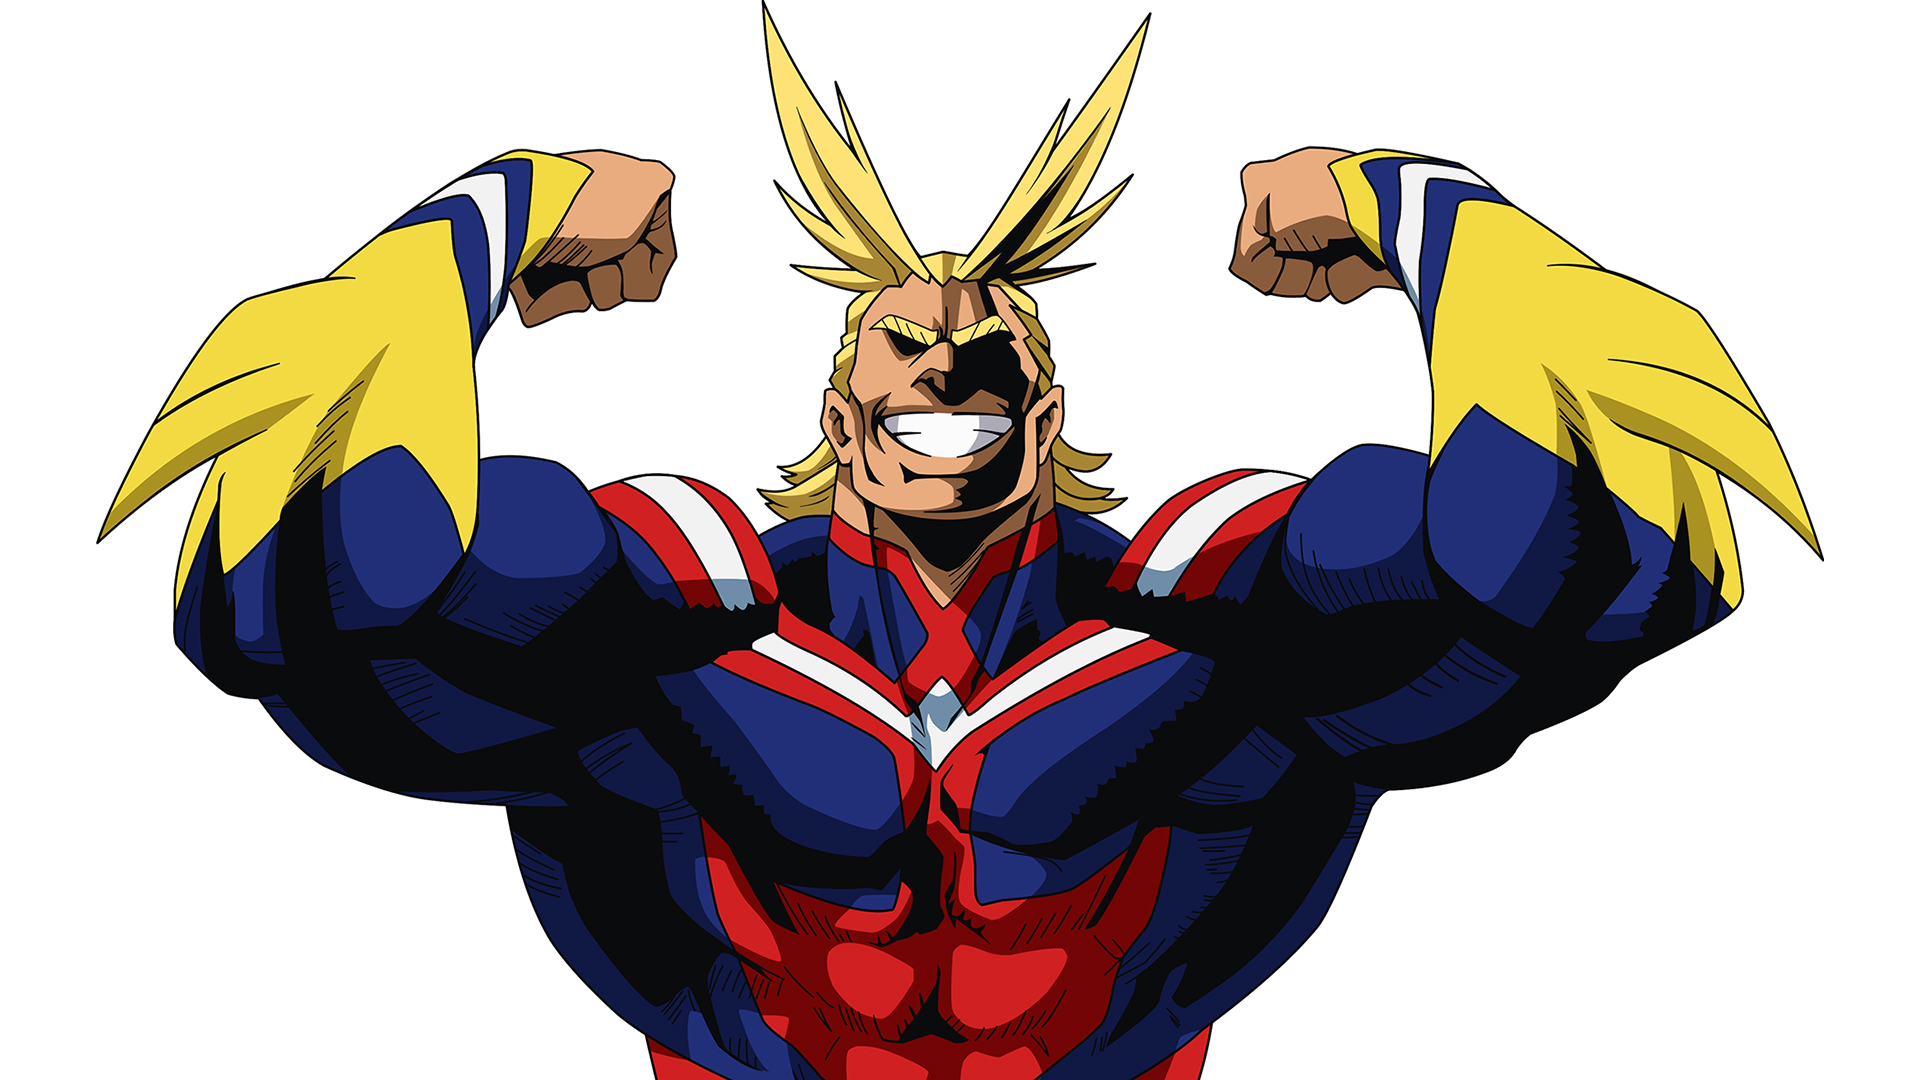 Boku no Hero All Might background 2